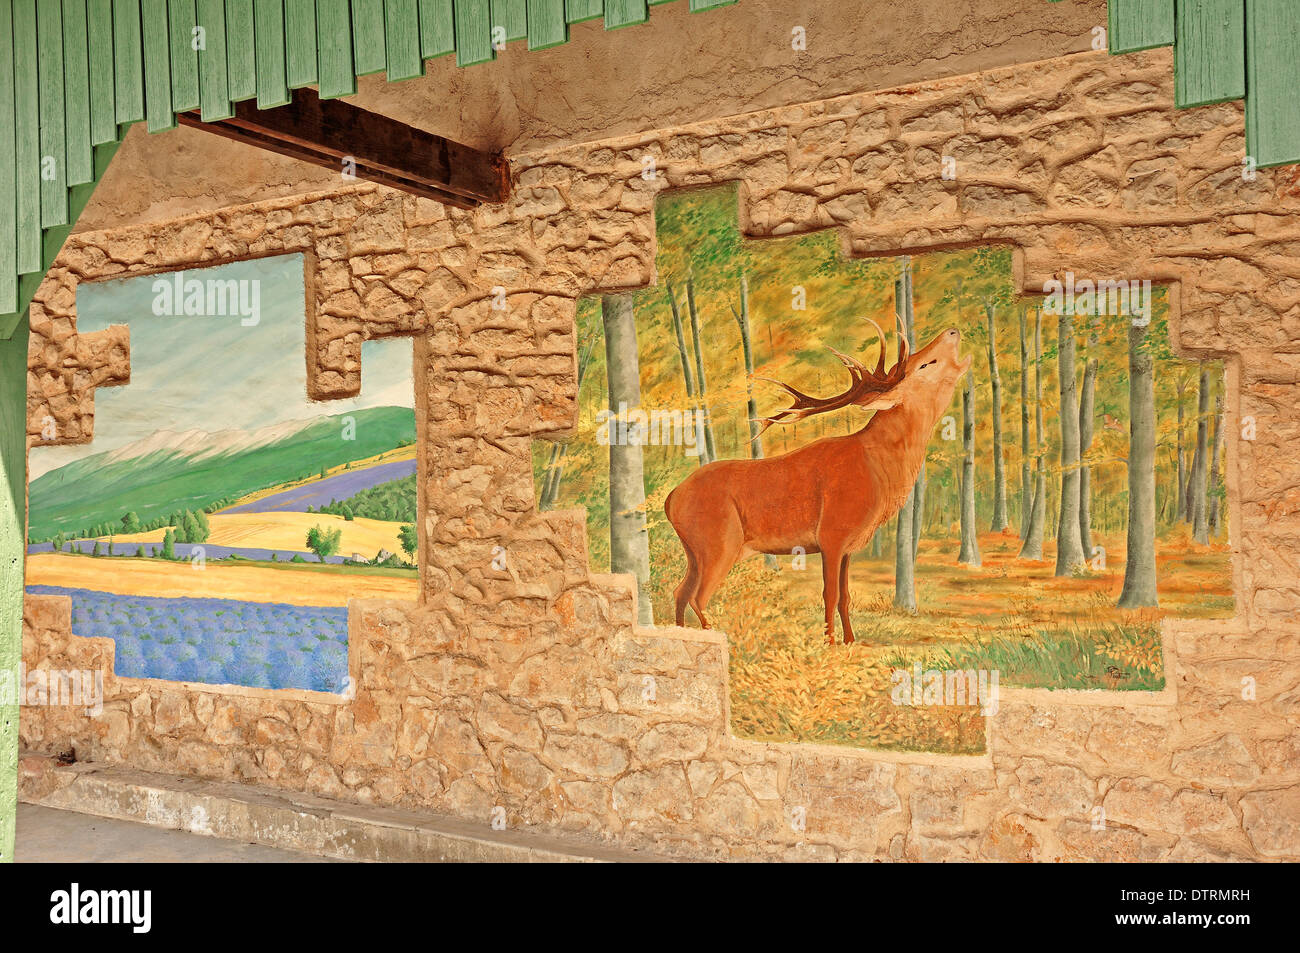 Wallpainting, house of environment and hunting, Sault, Vaucluse, Provence-Alpes-Cote d'Azur, Southern France - Stock Image